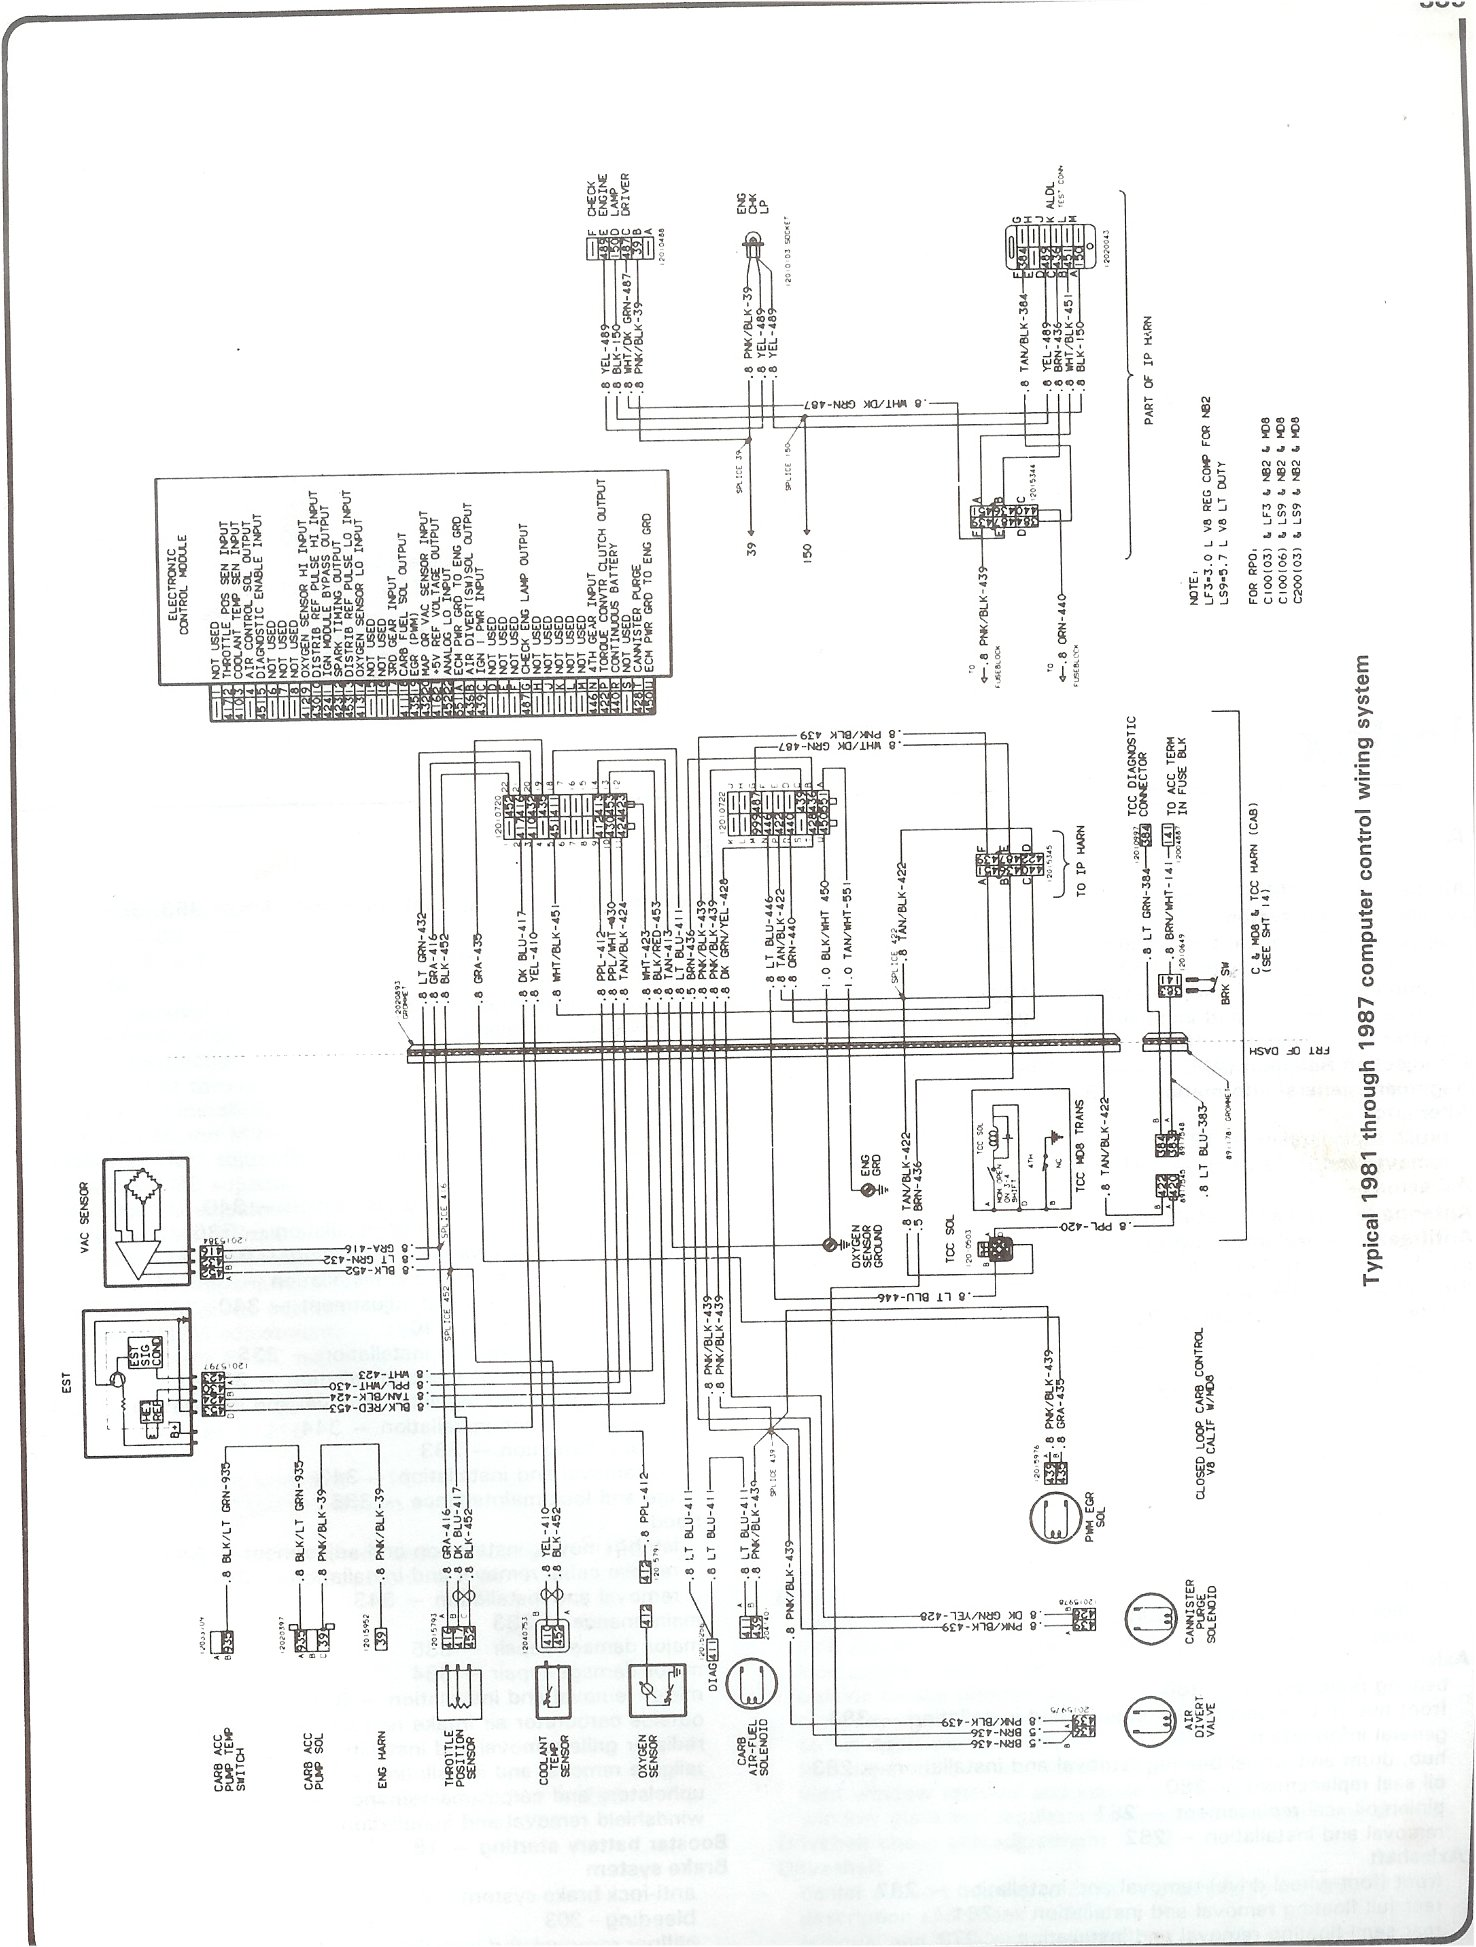 81 87_computer_control_wiring complete 73 87 wiring diagrams chevy wiring harness diagram at honlapkeszites.co